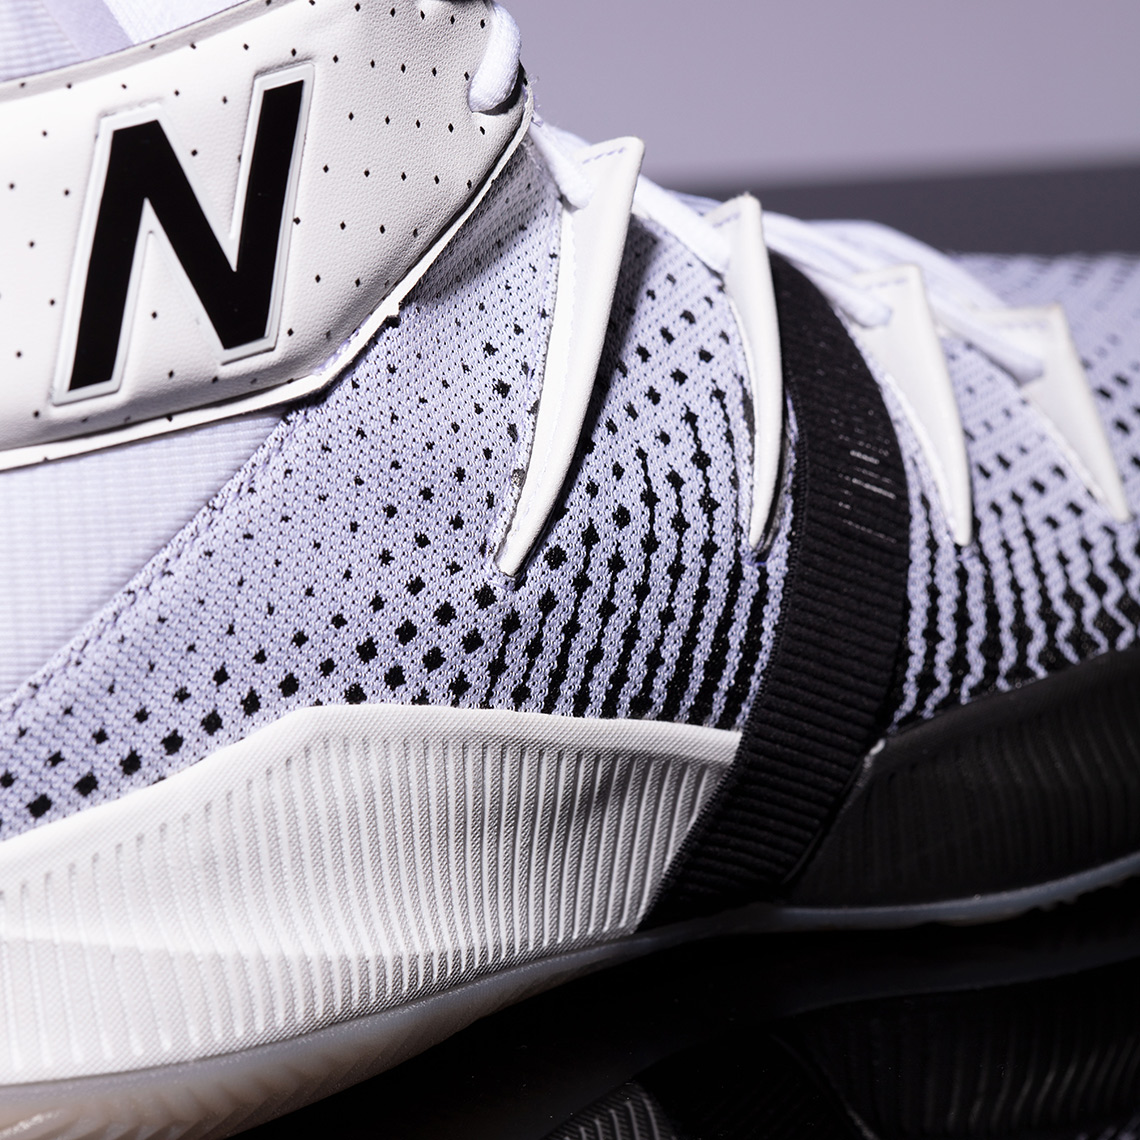 """27bb7640c7d36 Best Kept Secret Conveys courage and excitement, giving Kawhi and NB the  ability to shatter industry expectations and reveal the NBA's """"Best Kept  Secret""""."""